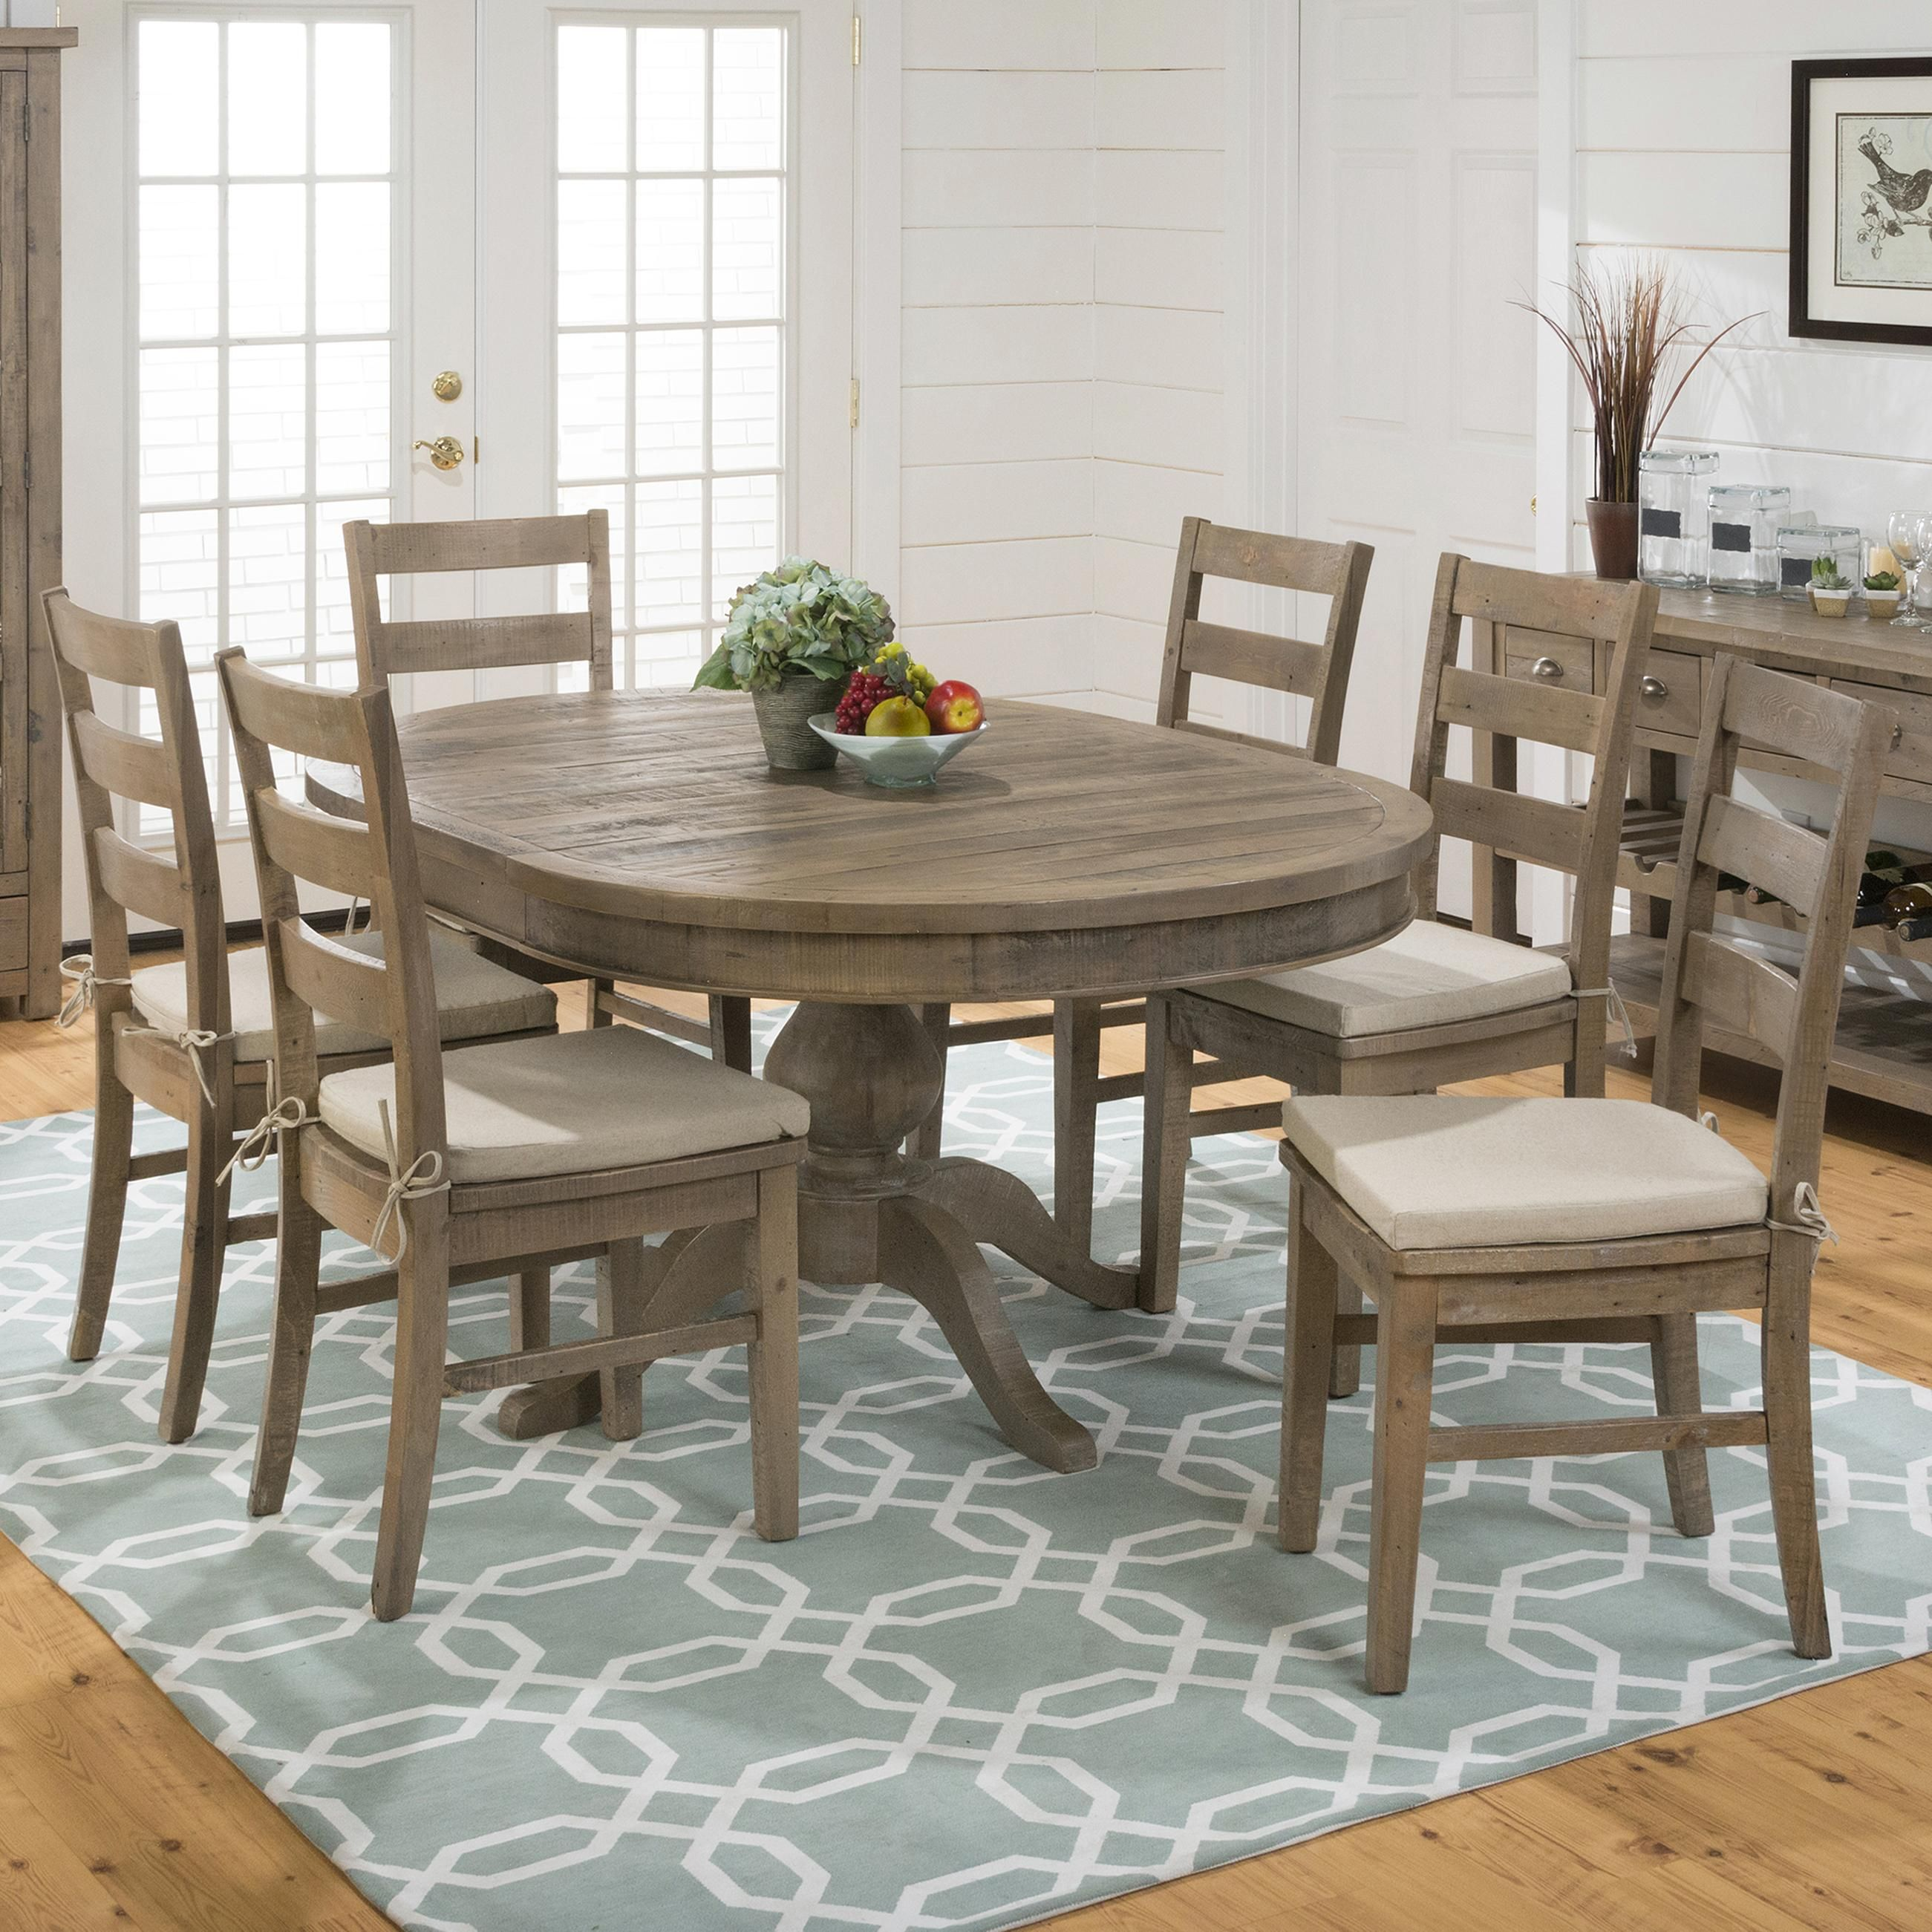 Slater Mill Pine Oval Table And Ladderback Chair Set By